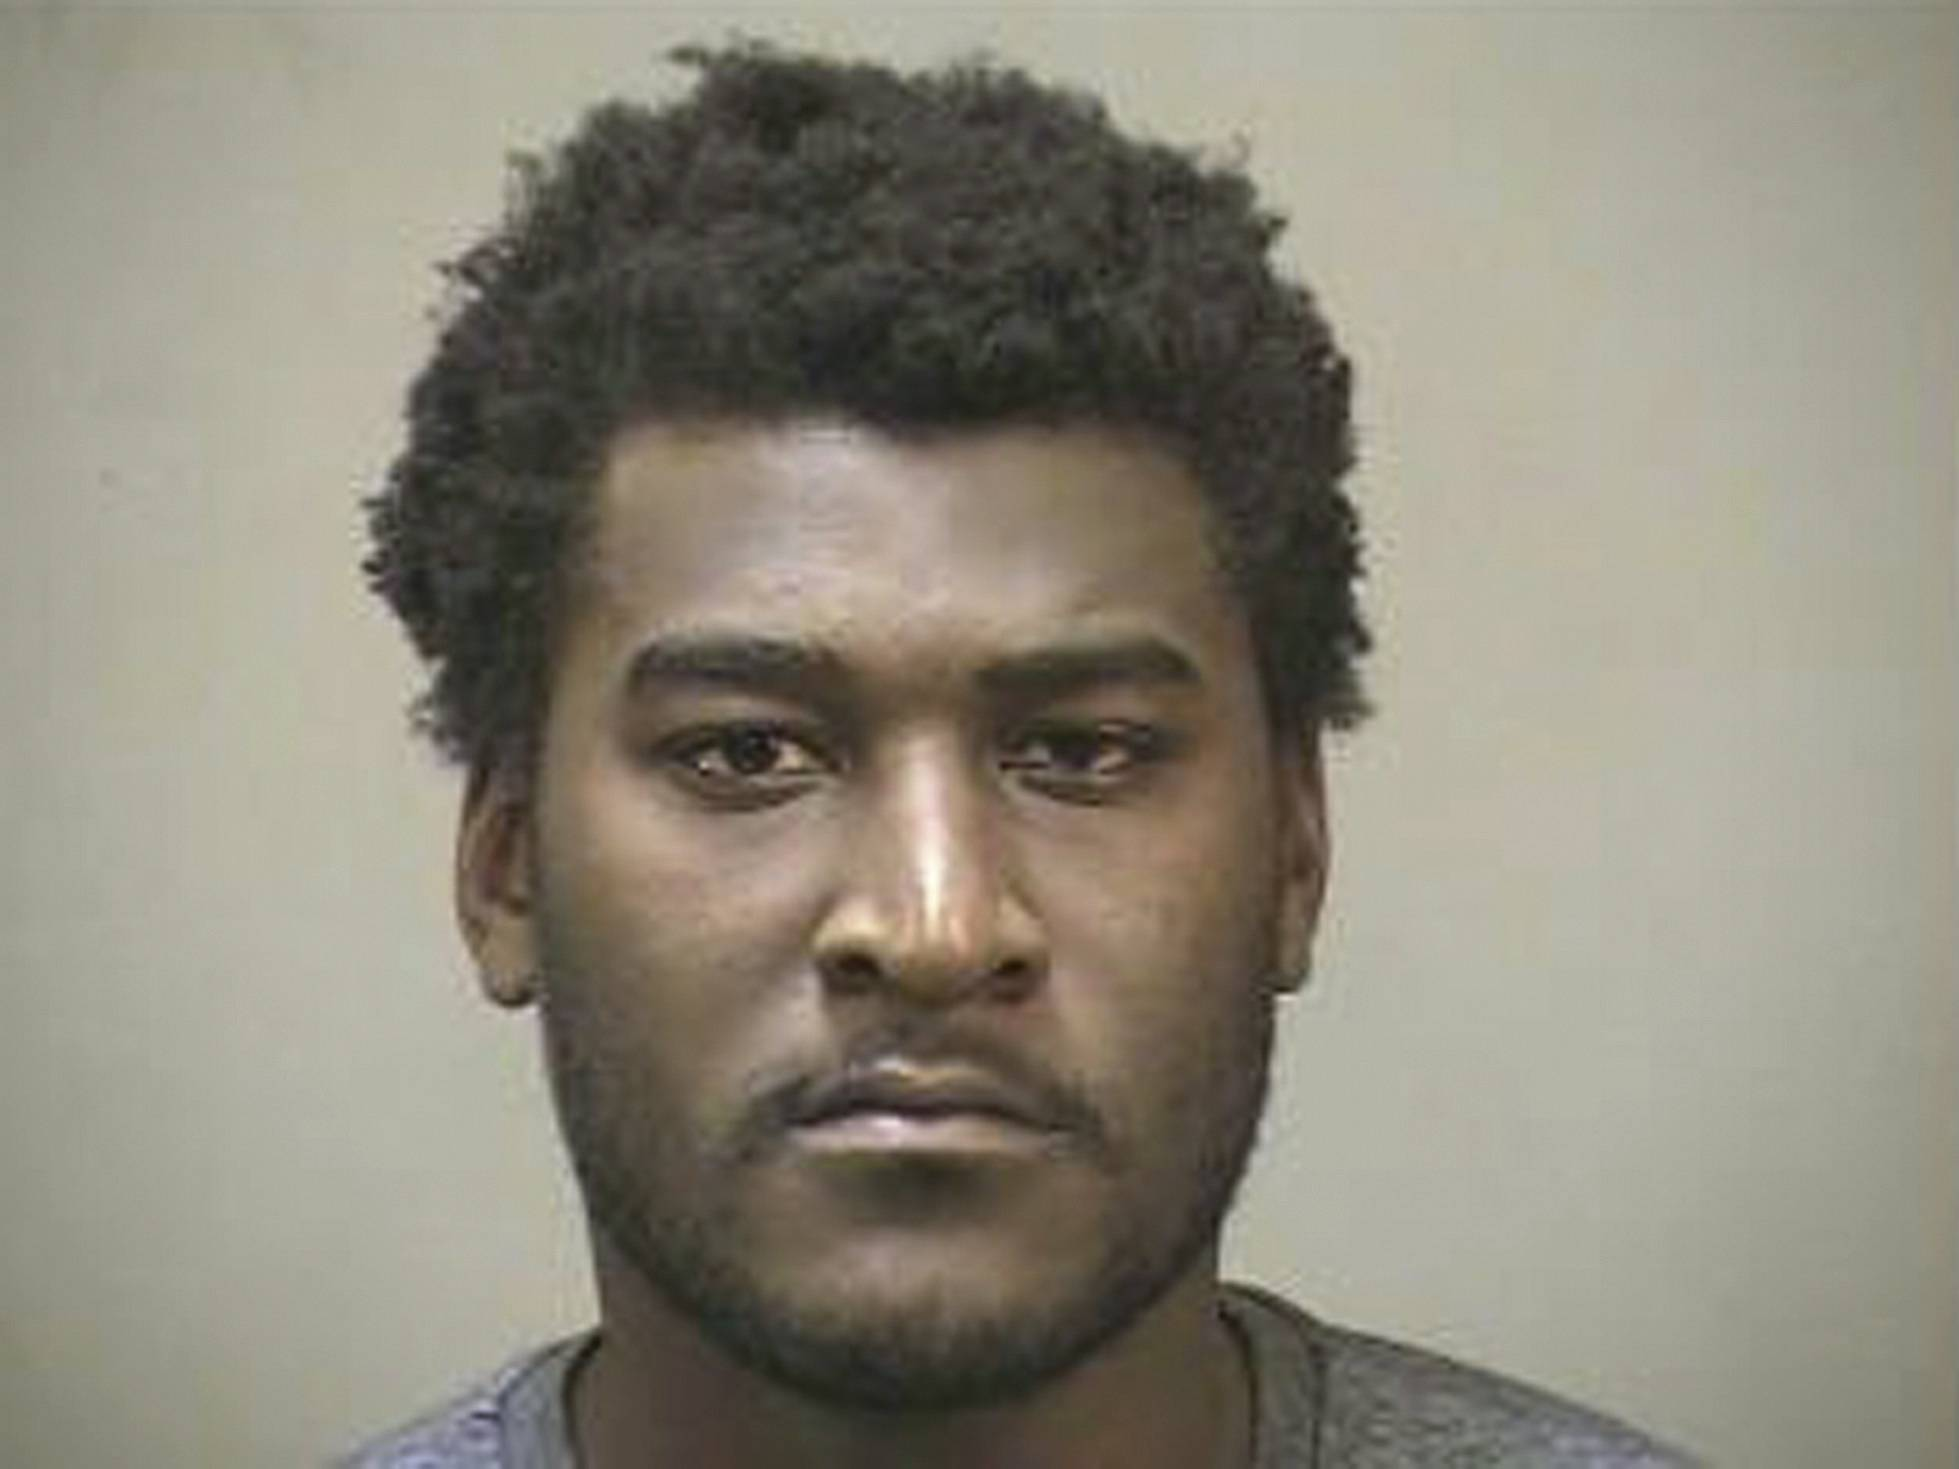 In this photo provided by the Edmond, Okla. Police Department, Justin Blackmon is pictured in a booking photo dated July 23, 2014. Blackmon, a former standout at Oklahoma State, was arrested Wednesday evening in the Oklahoma City suburb of Edmond on a complaint of marijuana possession.